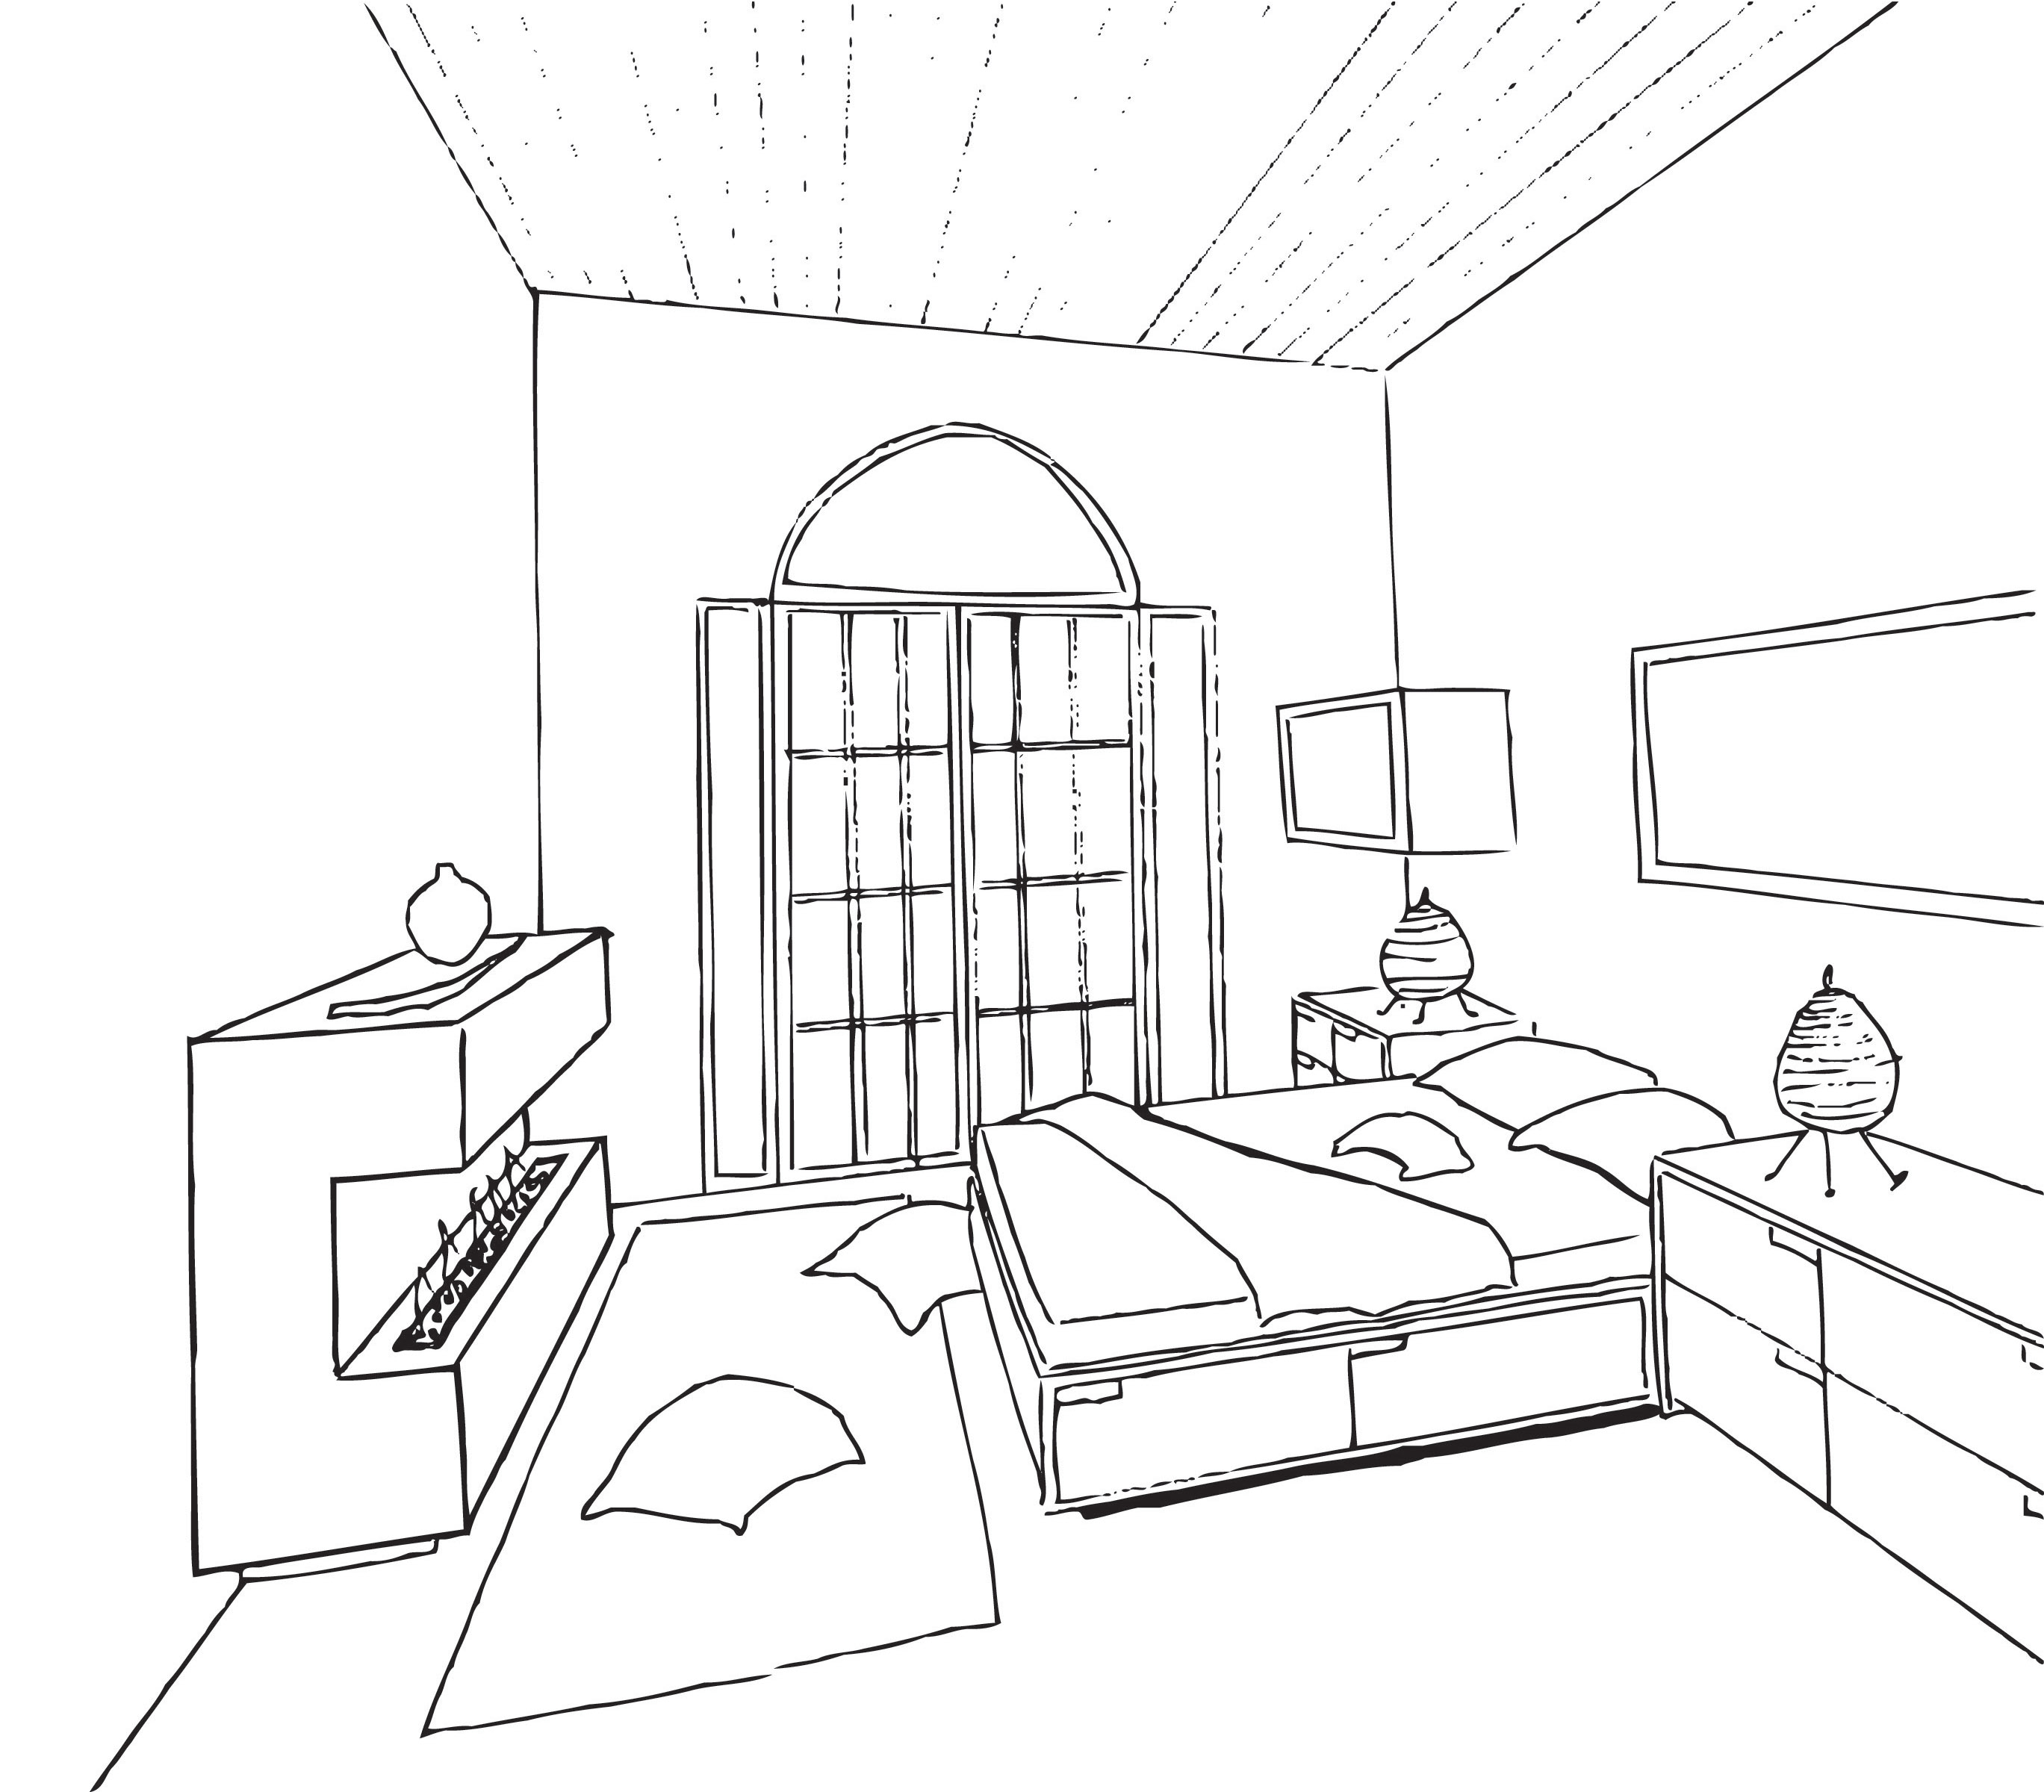 Multi story multi purpose design by linda betts at for 3d bedroom drawing